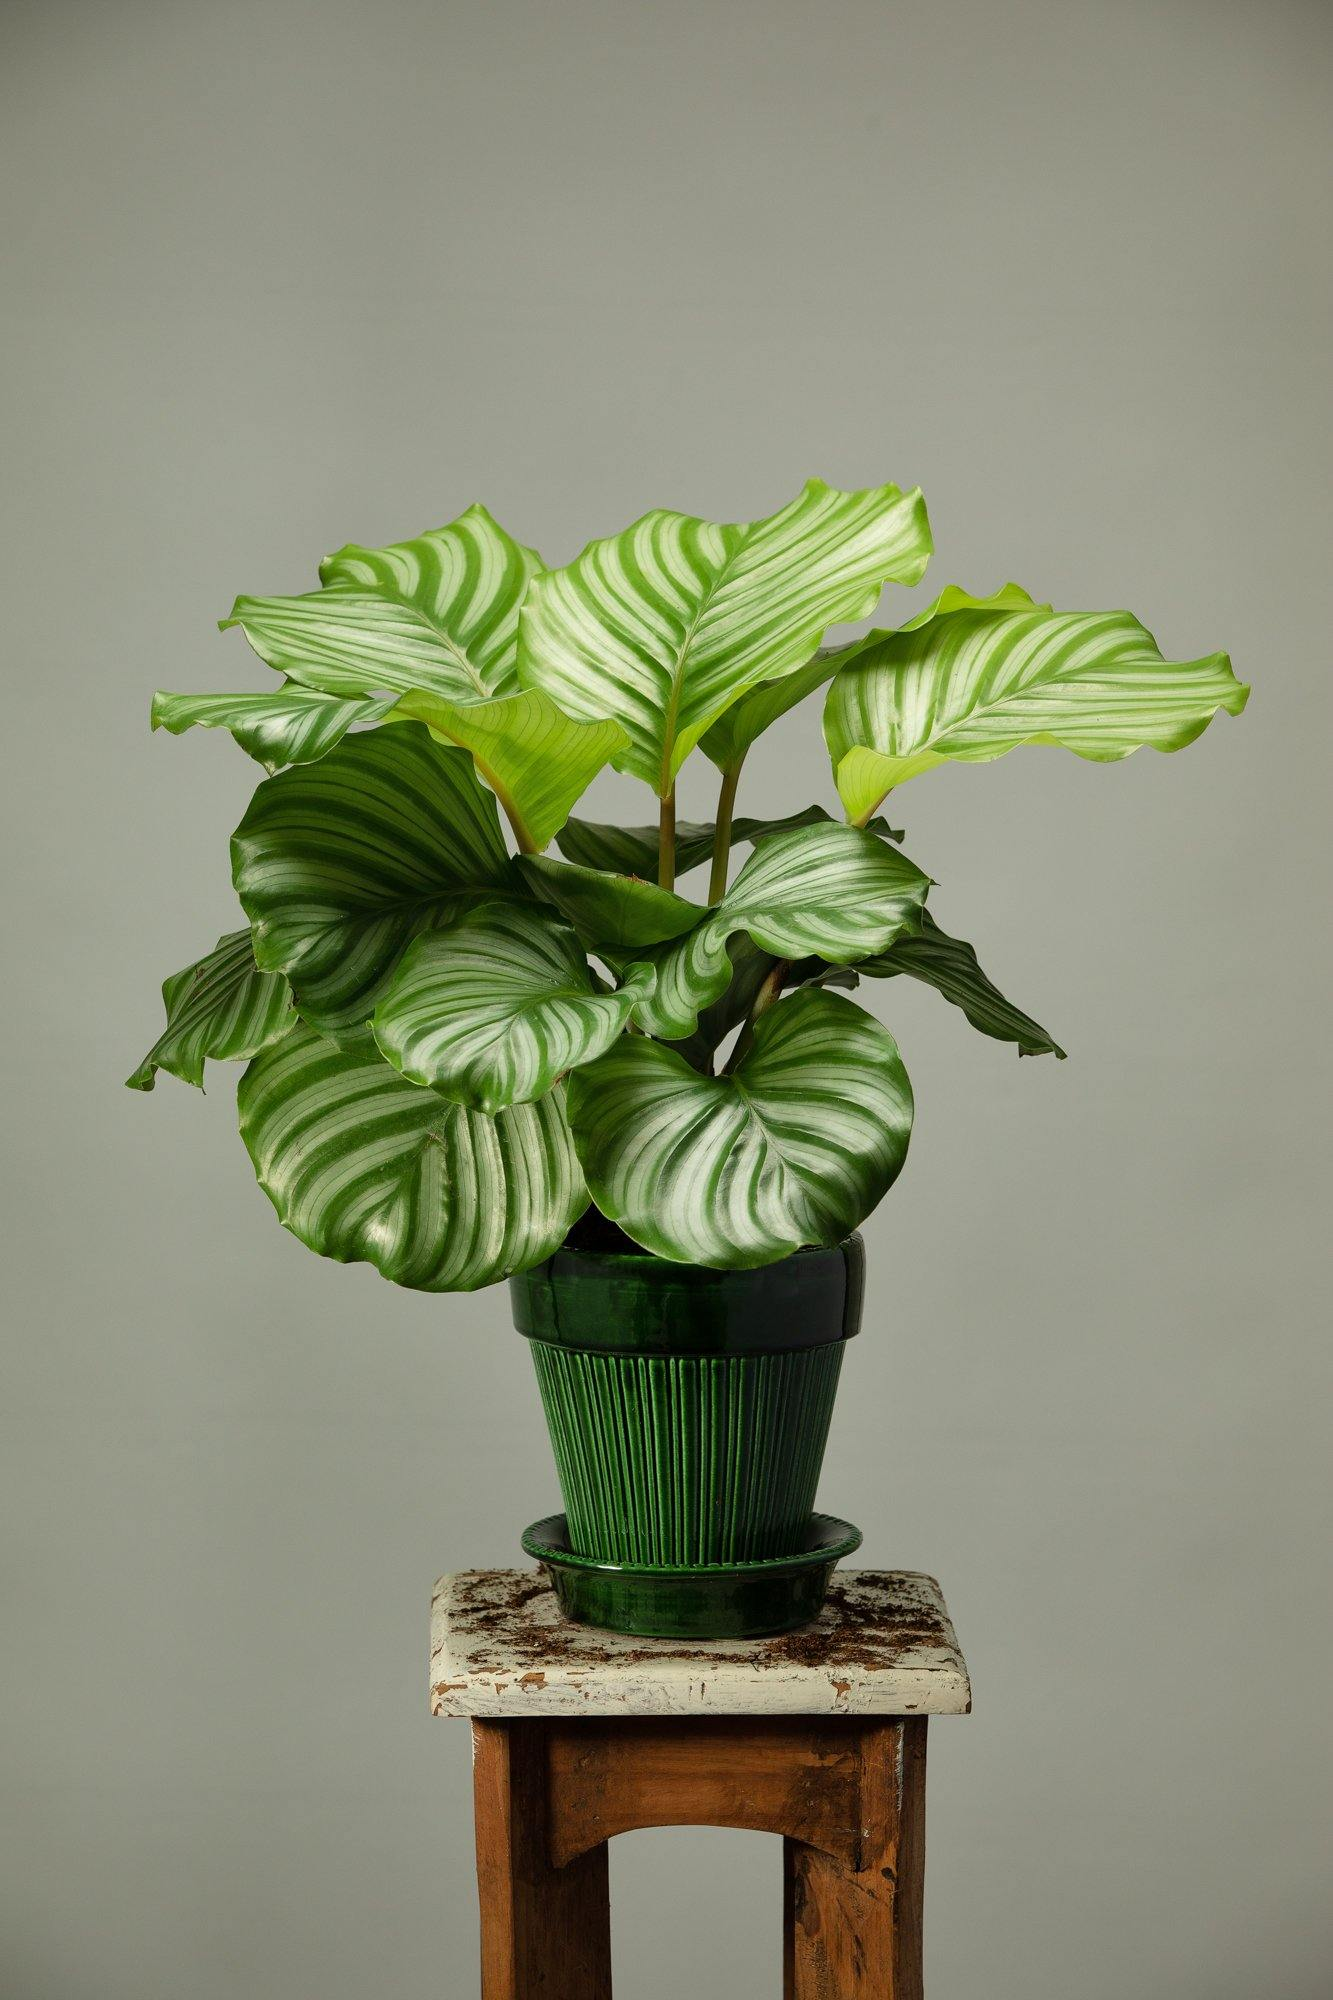 The Calathea Orbifolia office plant in a Berg's Simona Emeral green glazed indoor plant pot.